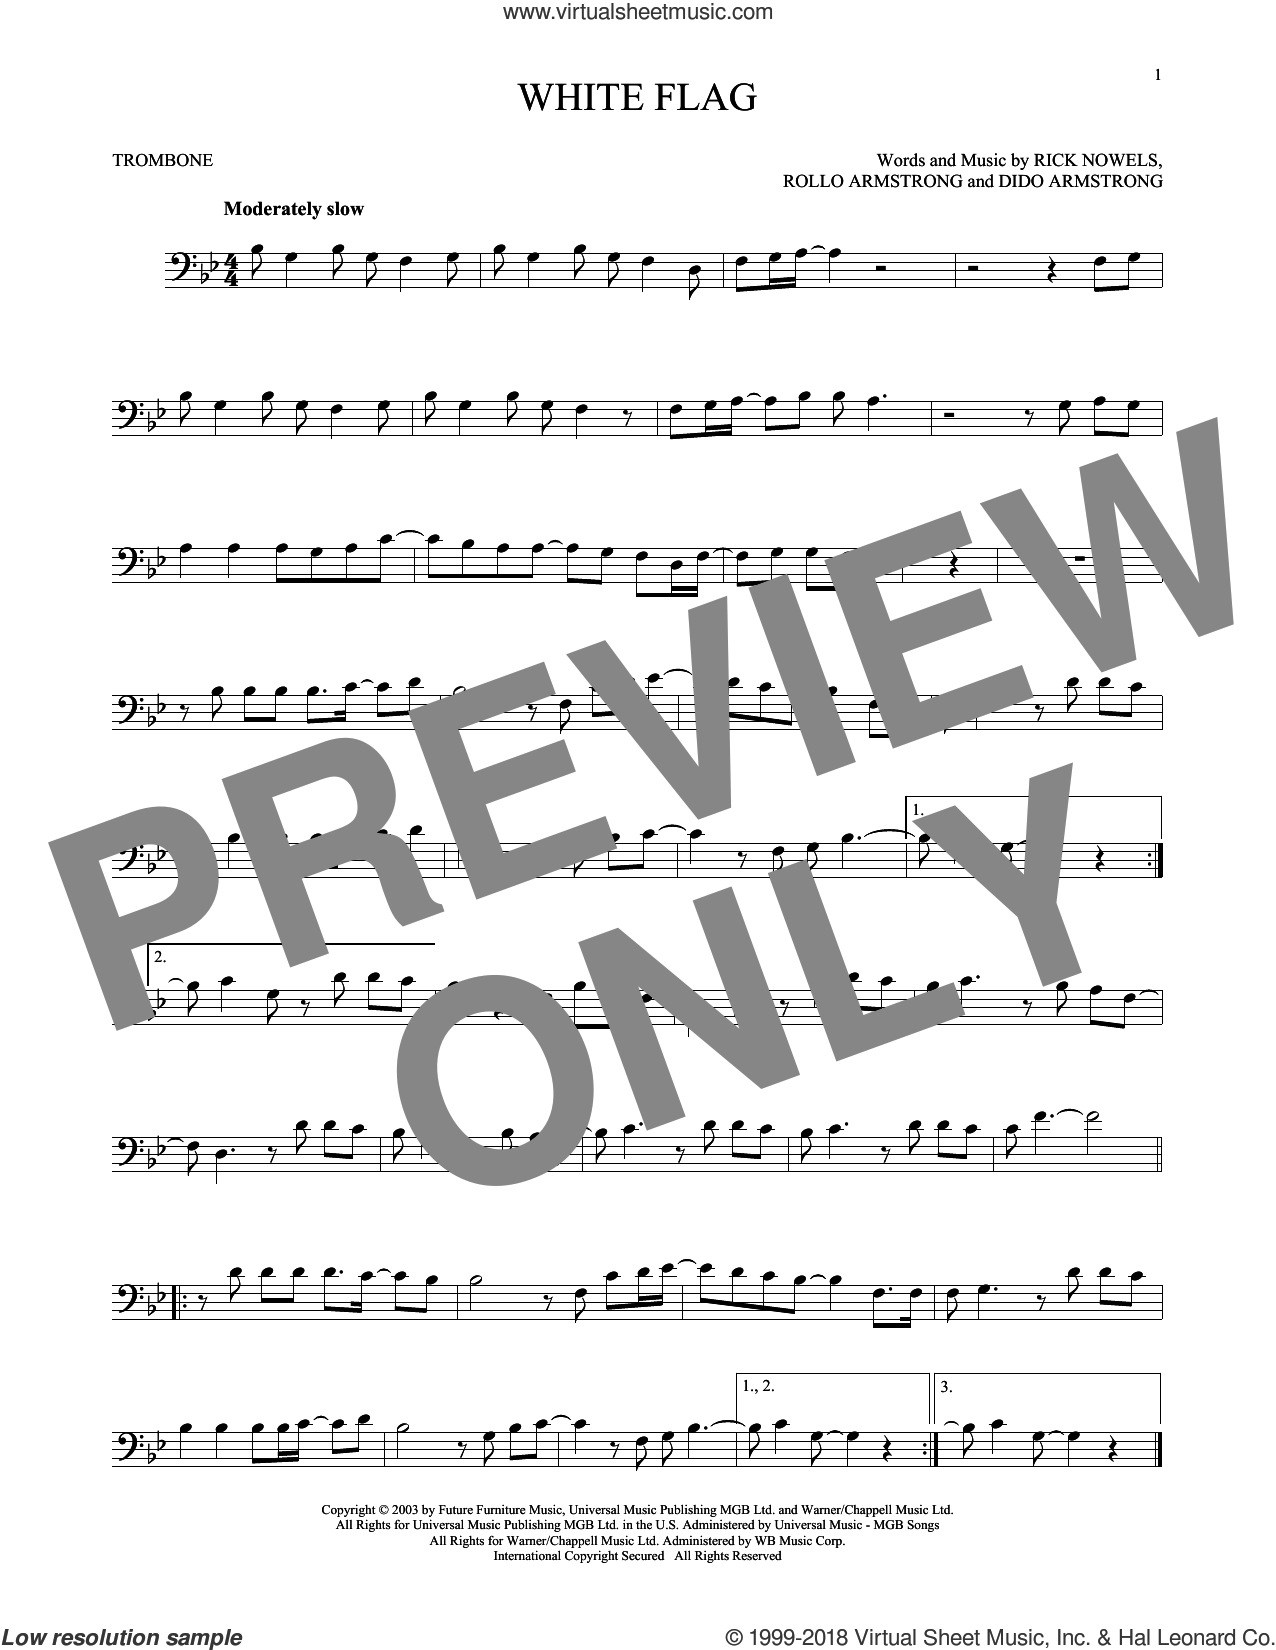 White Flag sheet music for trombone solo by Dido Armstrong, Rick Nowels and Rollo Armstrong, intermediate skill level